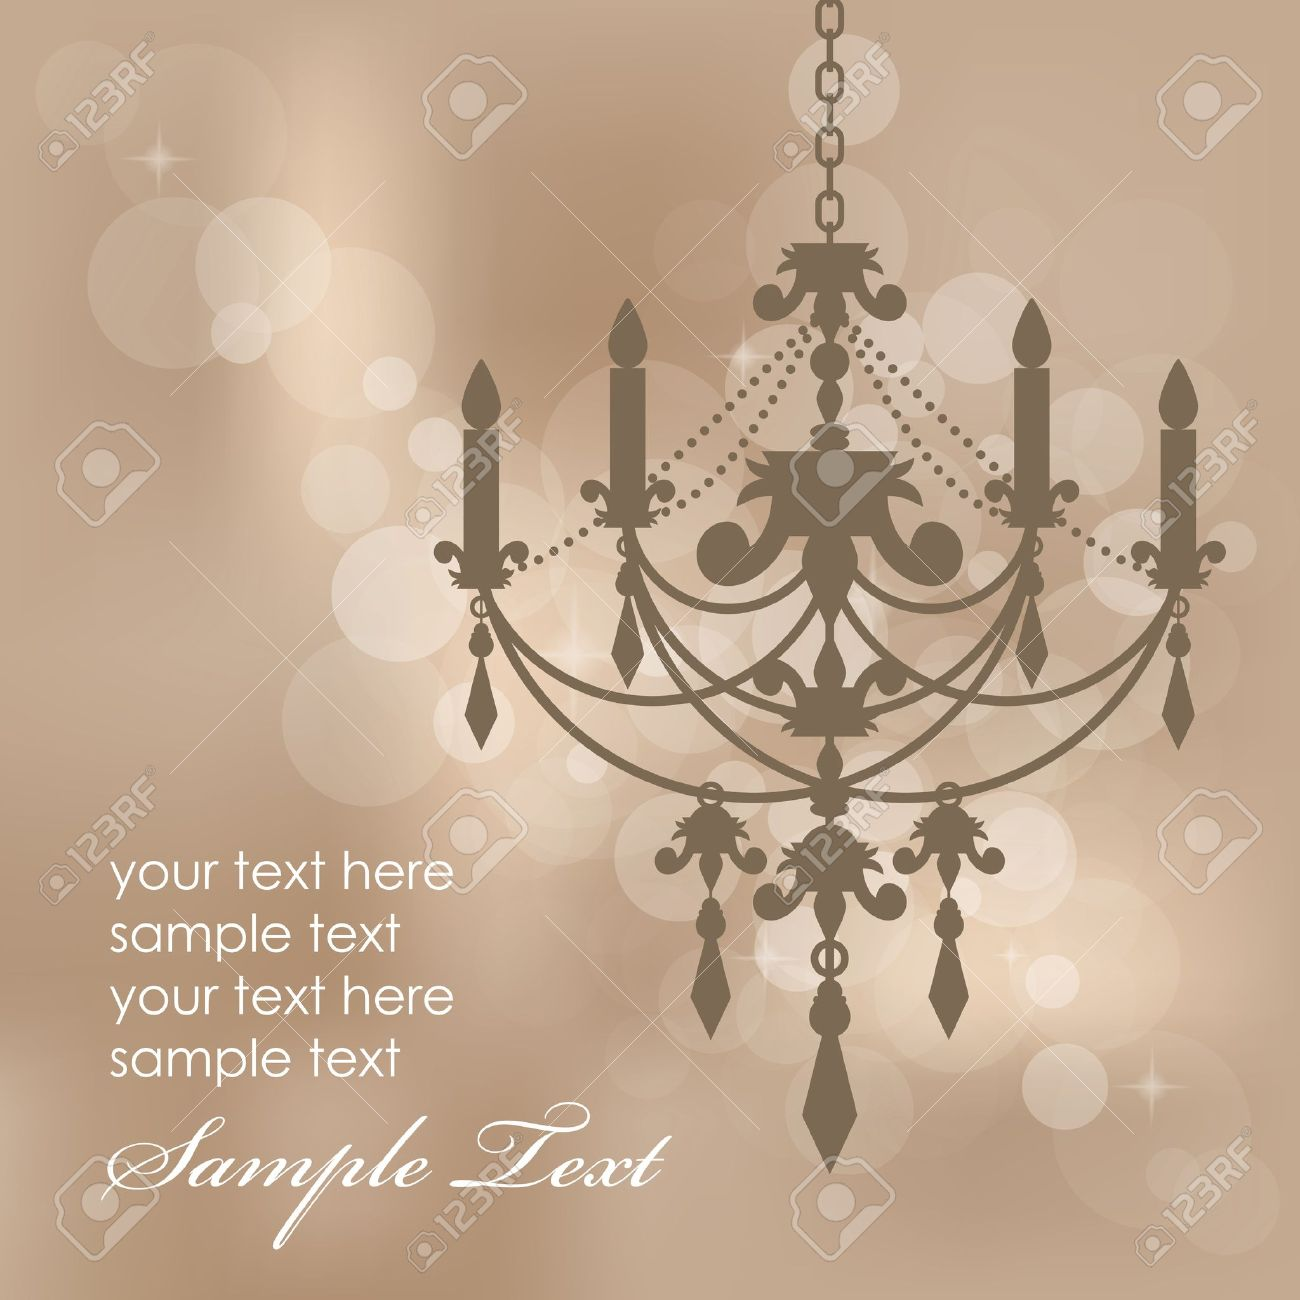 Vector brown background with chandelier - 18775507